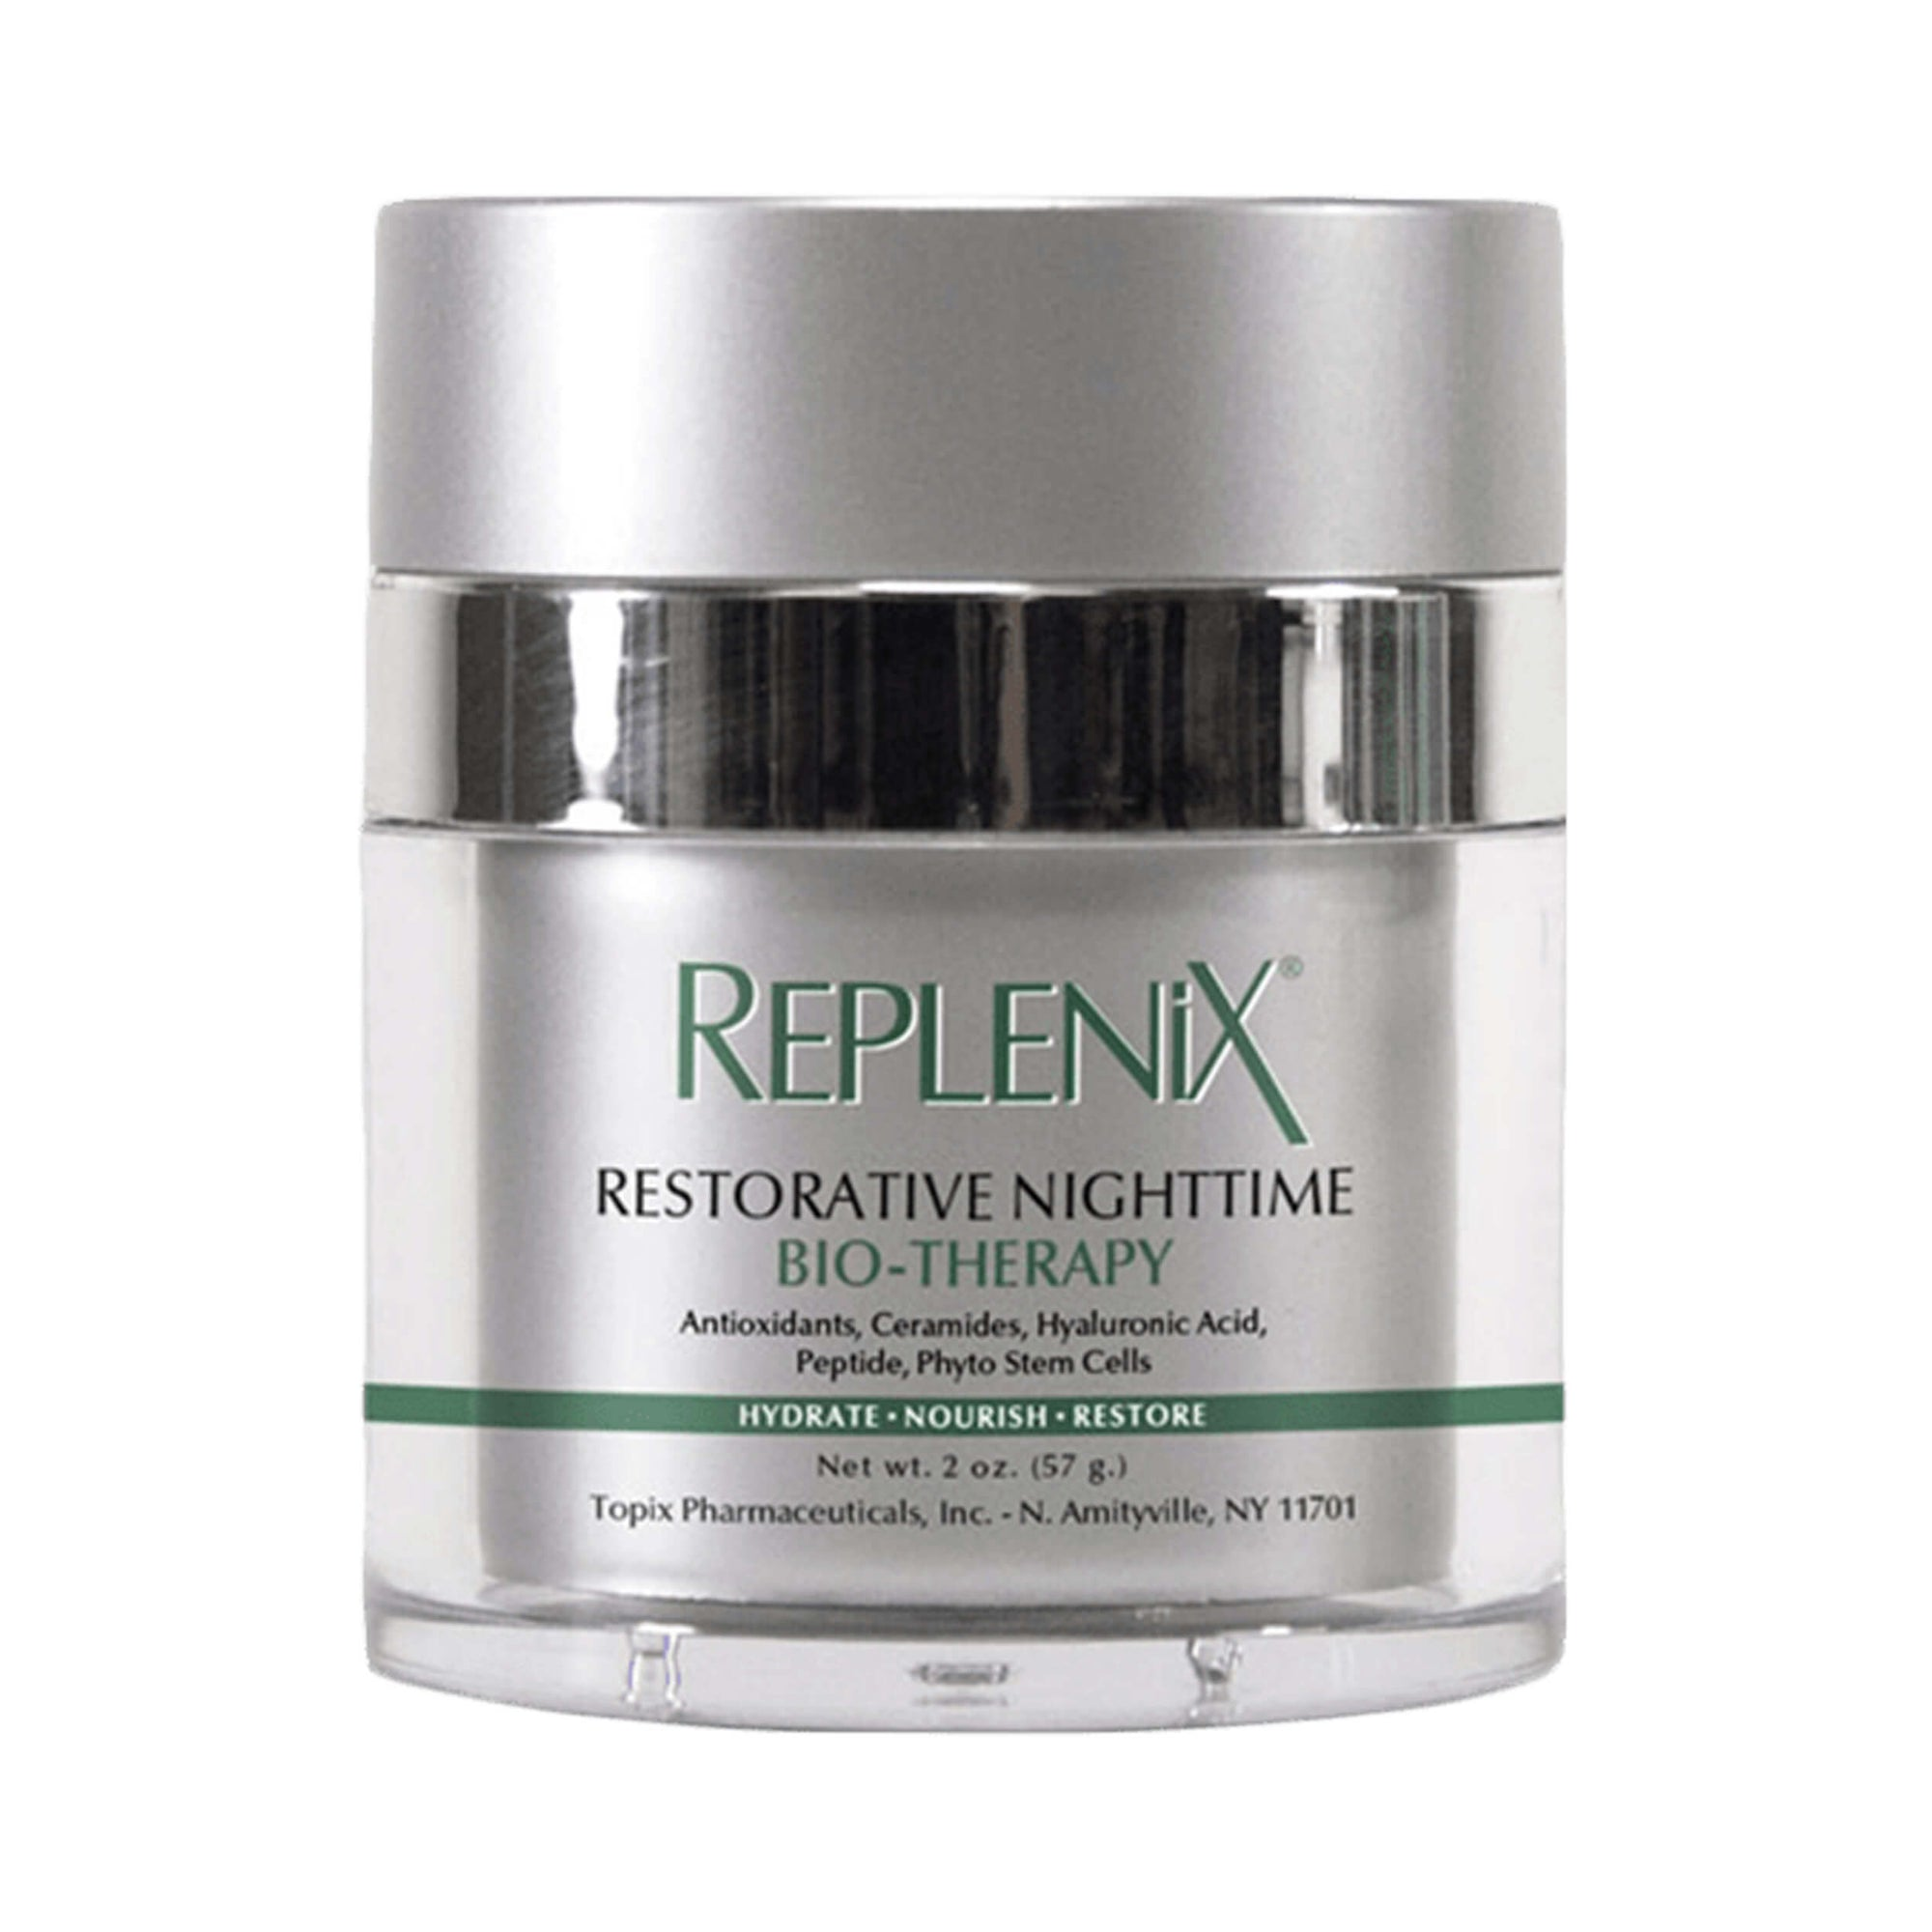 Replenix Restorative Nighttime Bio-Therapy 57g